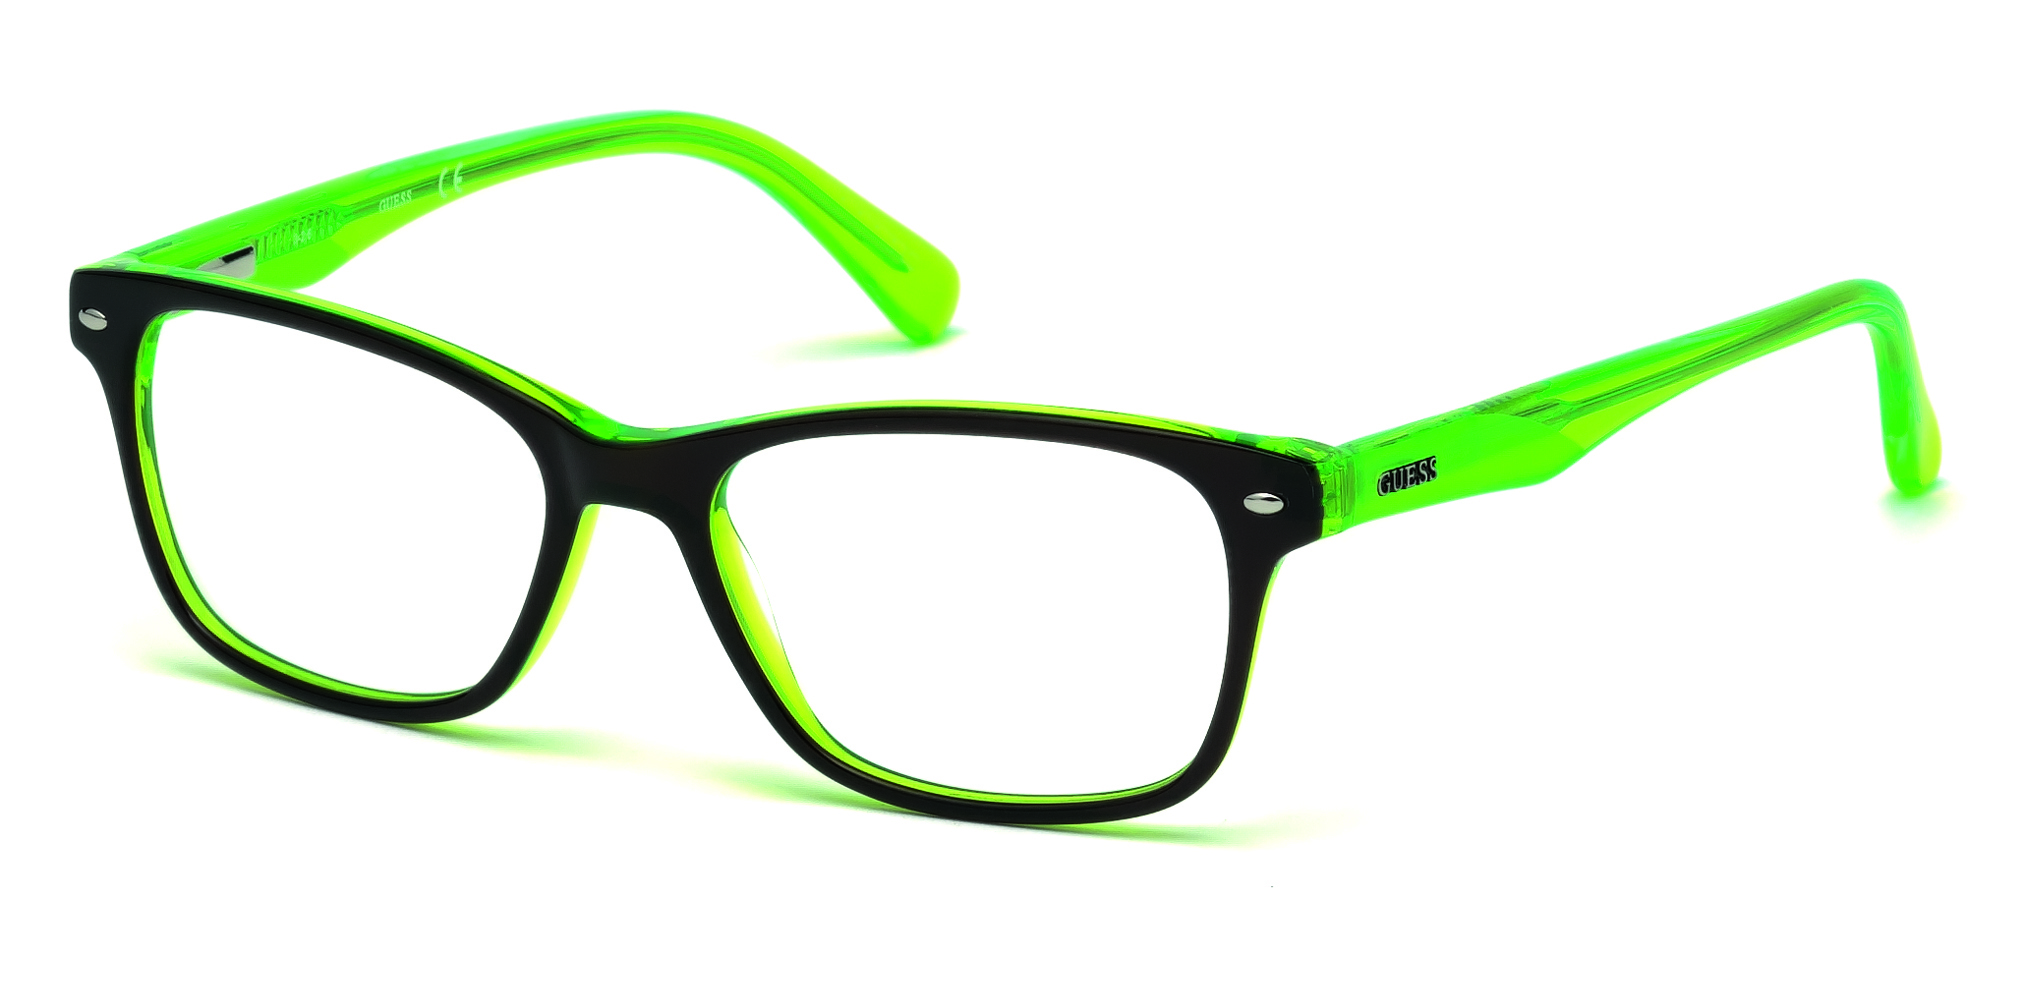 07395e2950f Kid-approved eyewear showcased by many top manufacturers